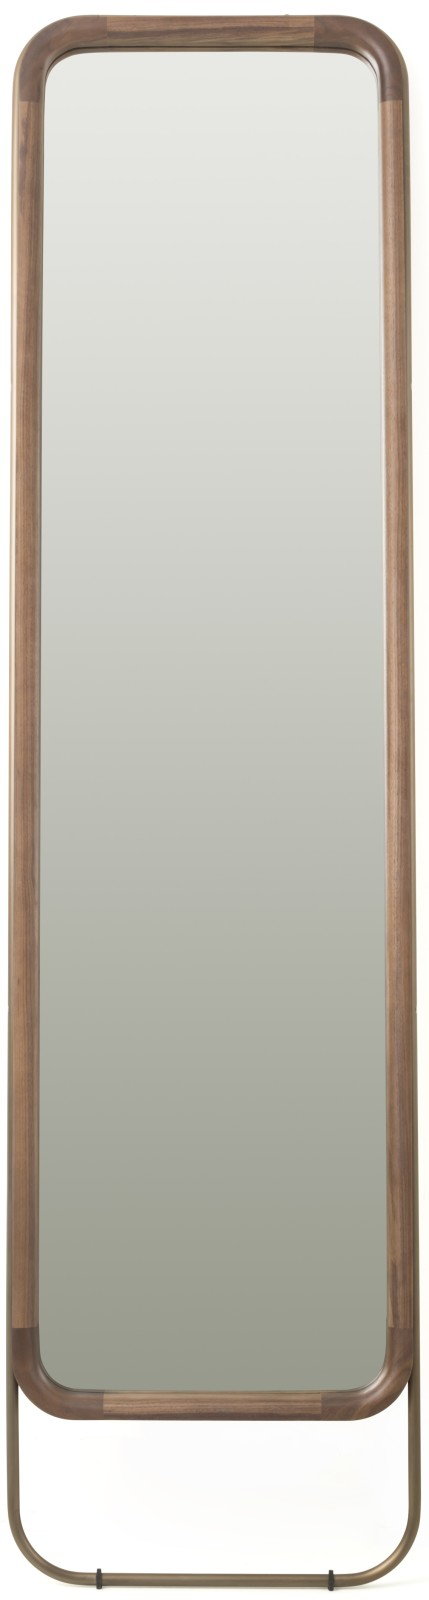 Utility Rectangular Mirror Walnut Brown Stained Ash, Small